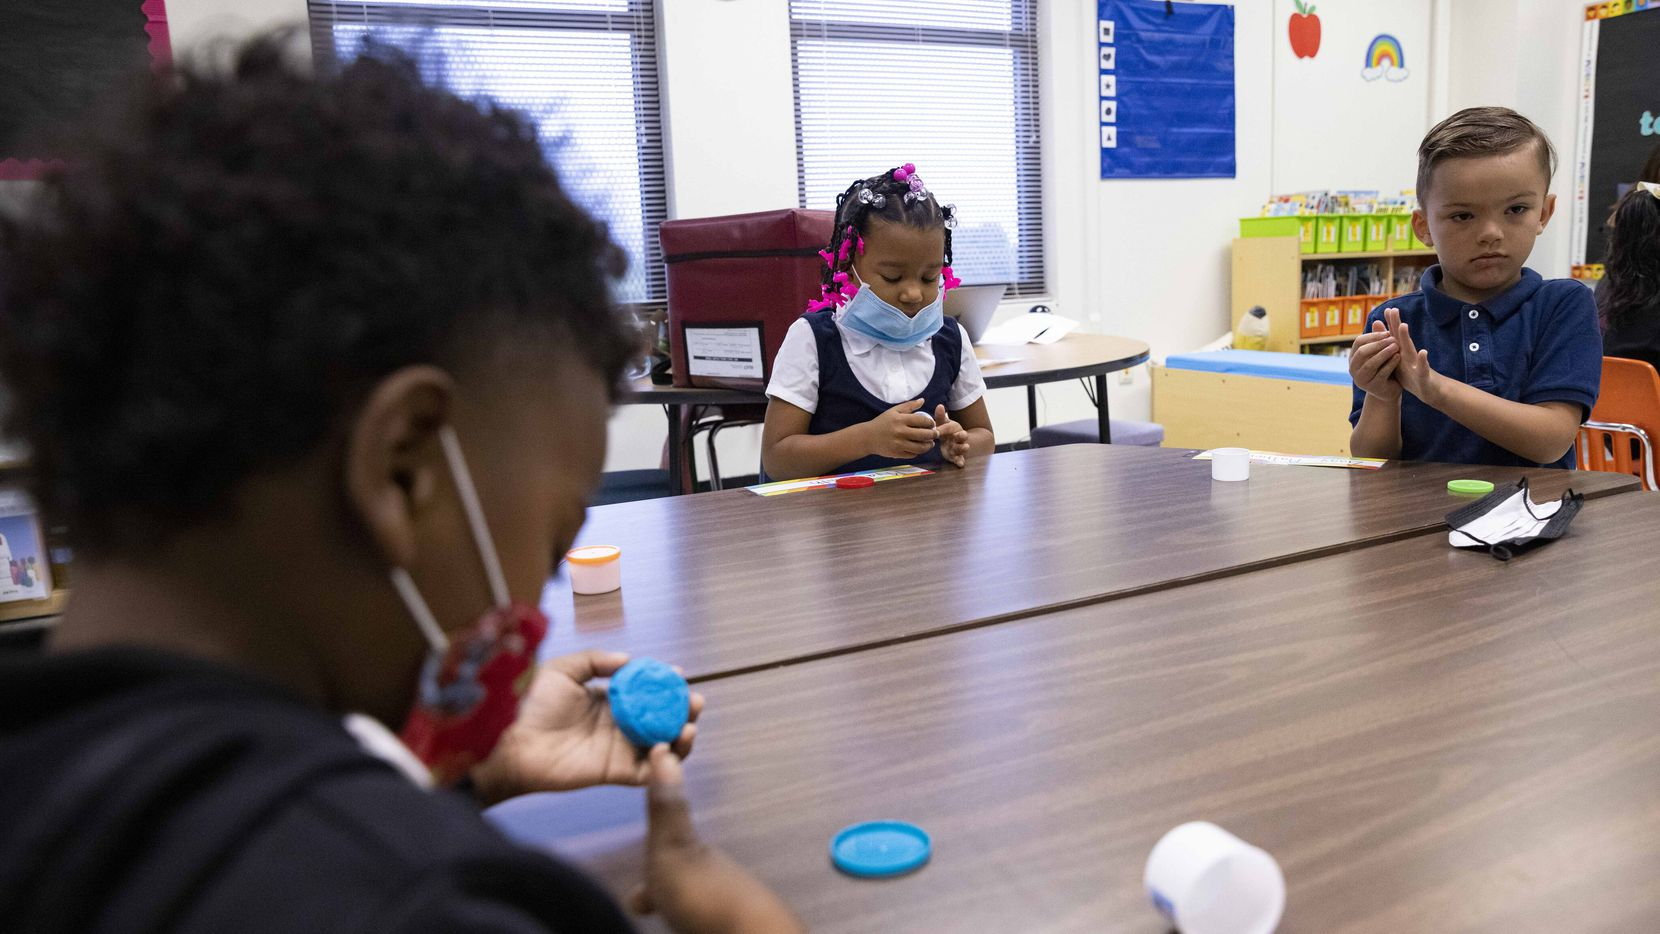 Mya Smith (center) and Ziggy Matherly (right) play with play-doh during the first day of school on Aug. 2, 2021, at H.I. Holland Elementary School in Dallas.